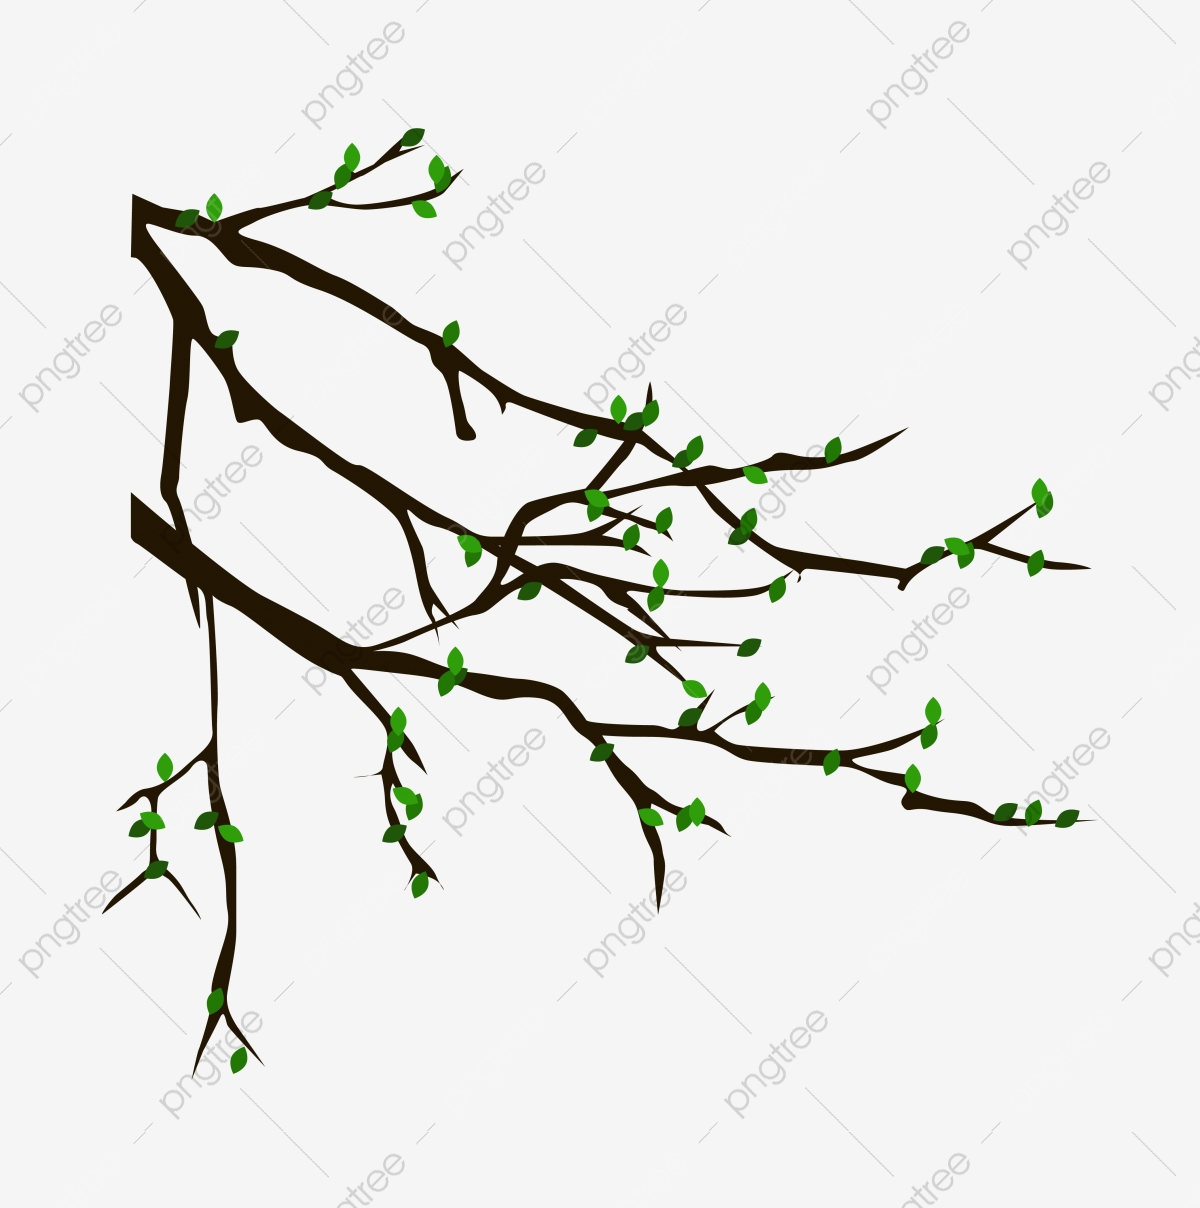 Vector Cartoon Tree Branch Sprouting Heart Shaped Branches Flowers Vines Png And Vector With Transparent Background For Free Download